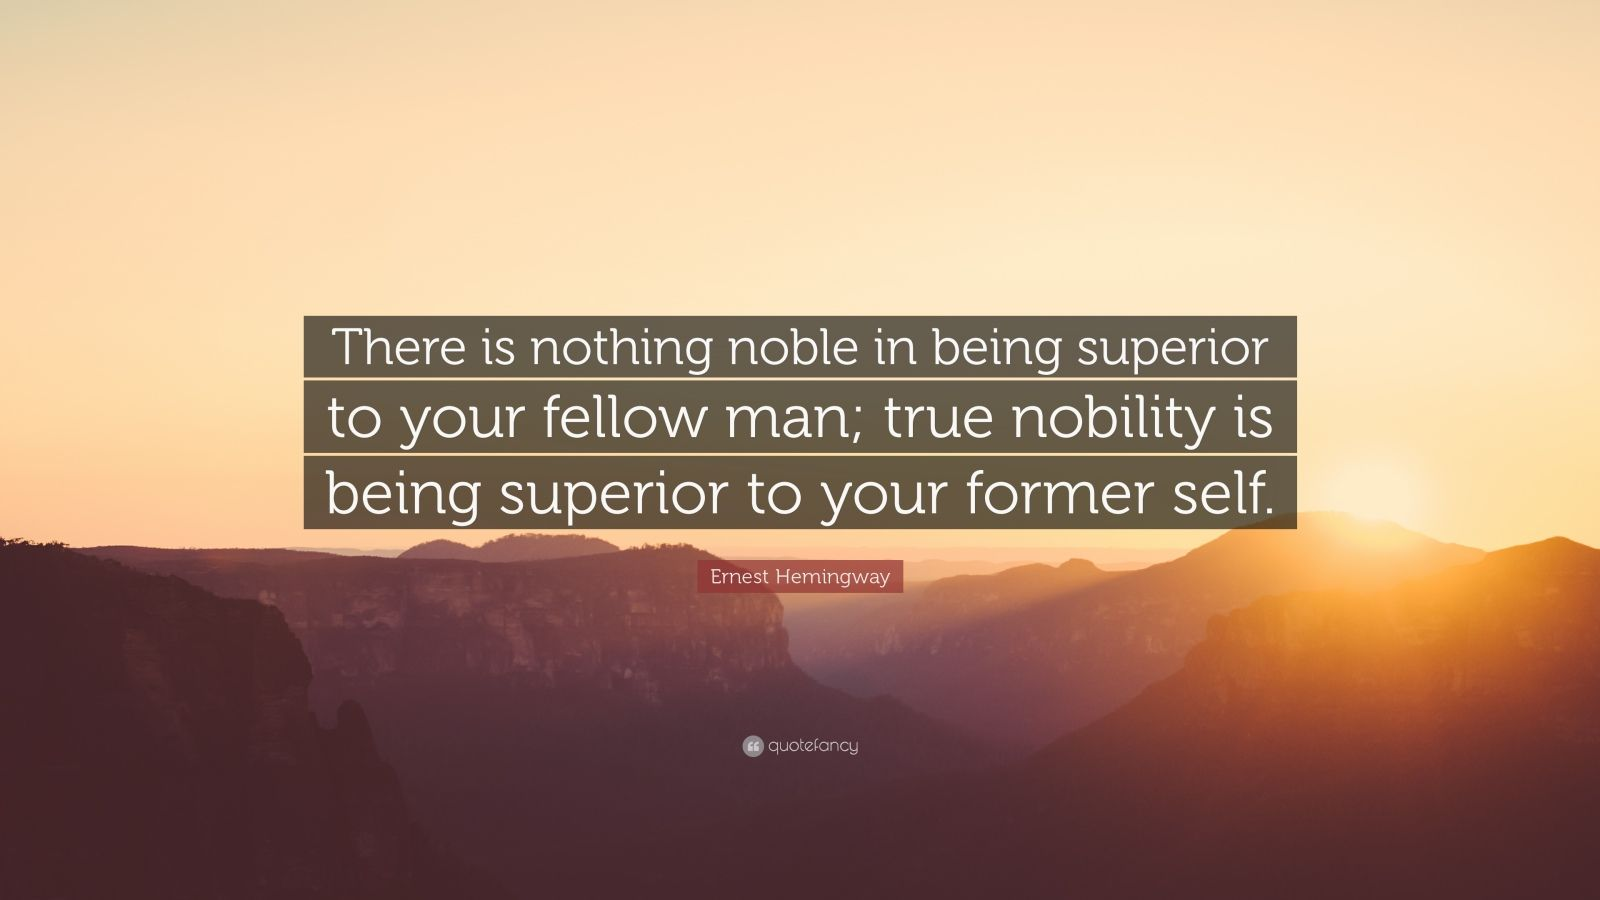 Ernest Hemingway Quote There Is Nothing Noble In Being Superior To